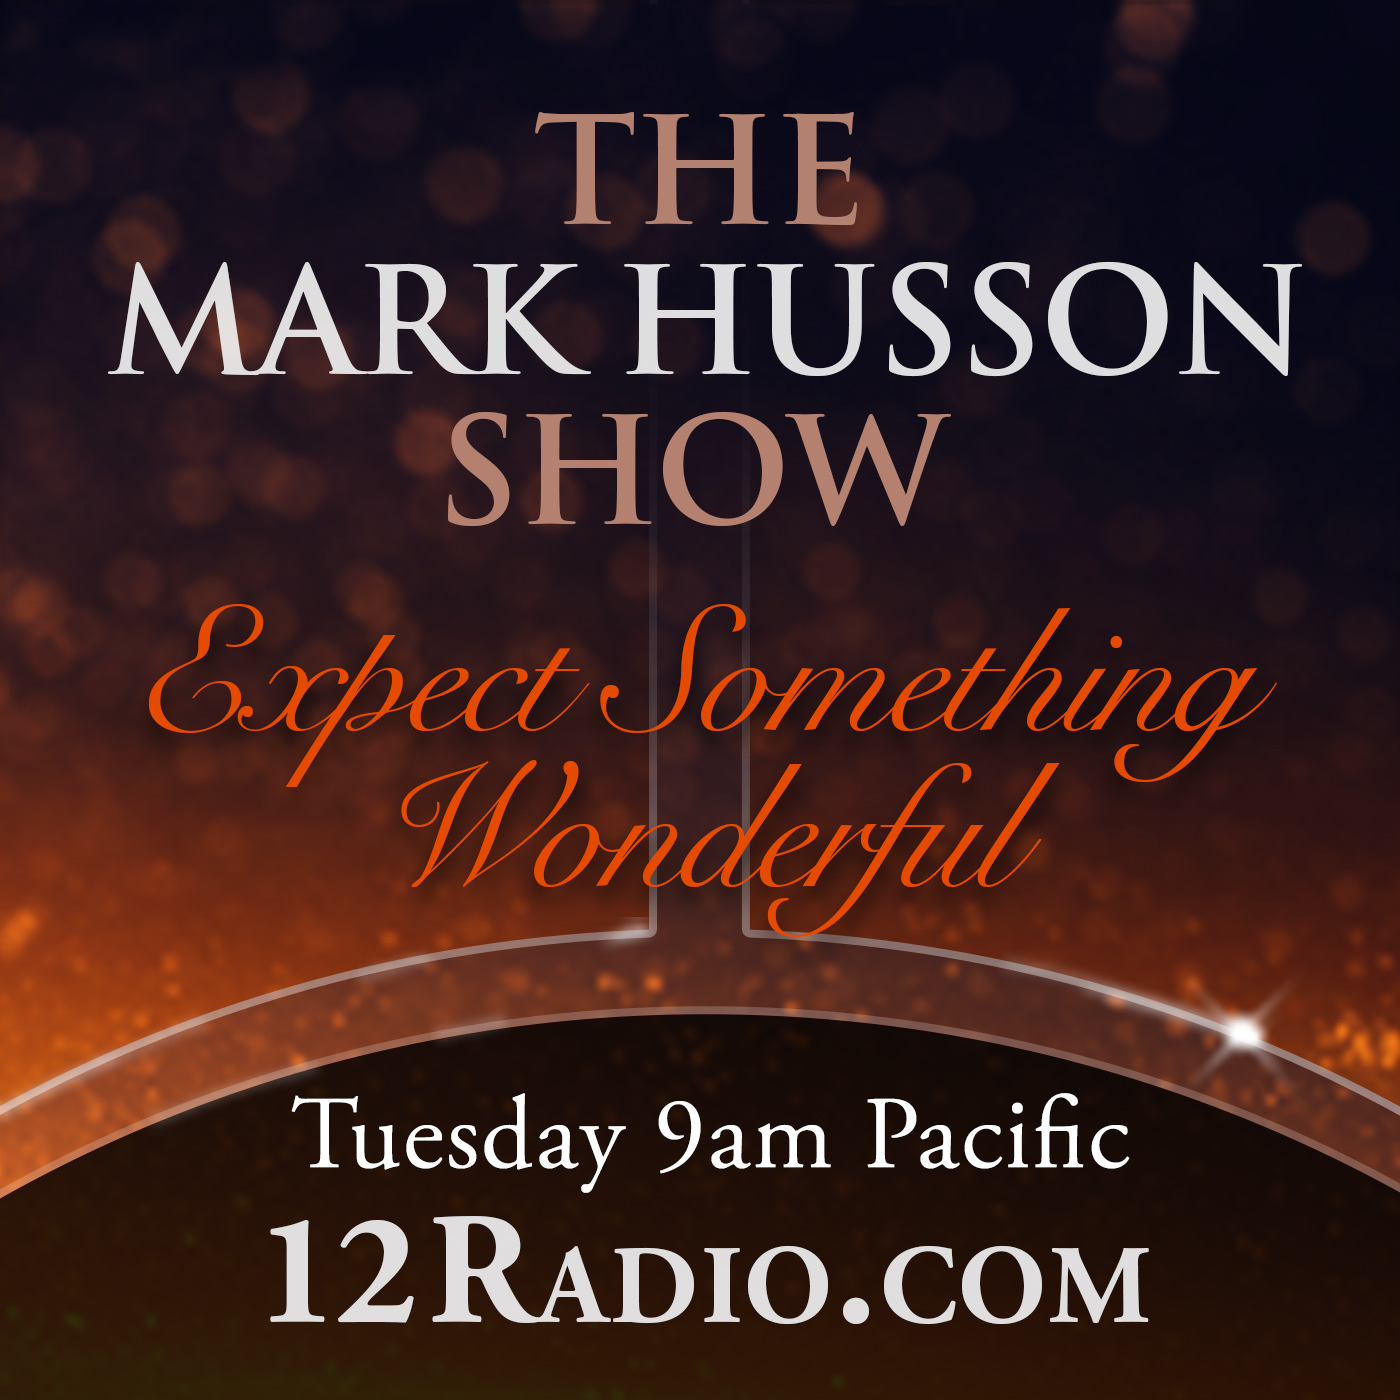 Radio Archives - markhusson.com